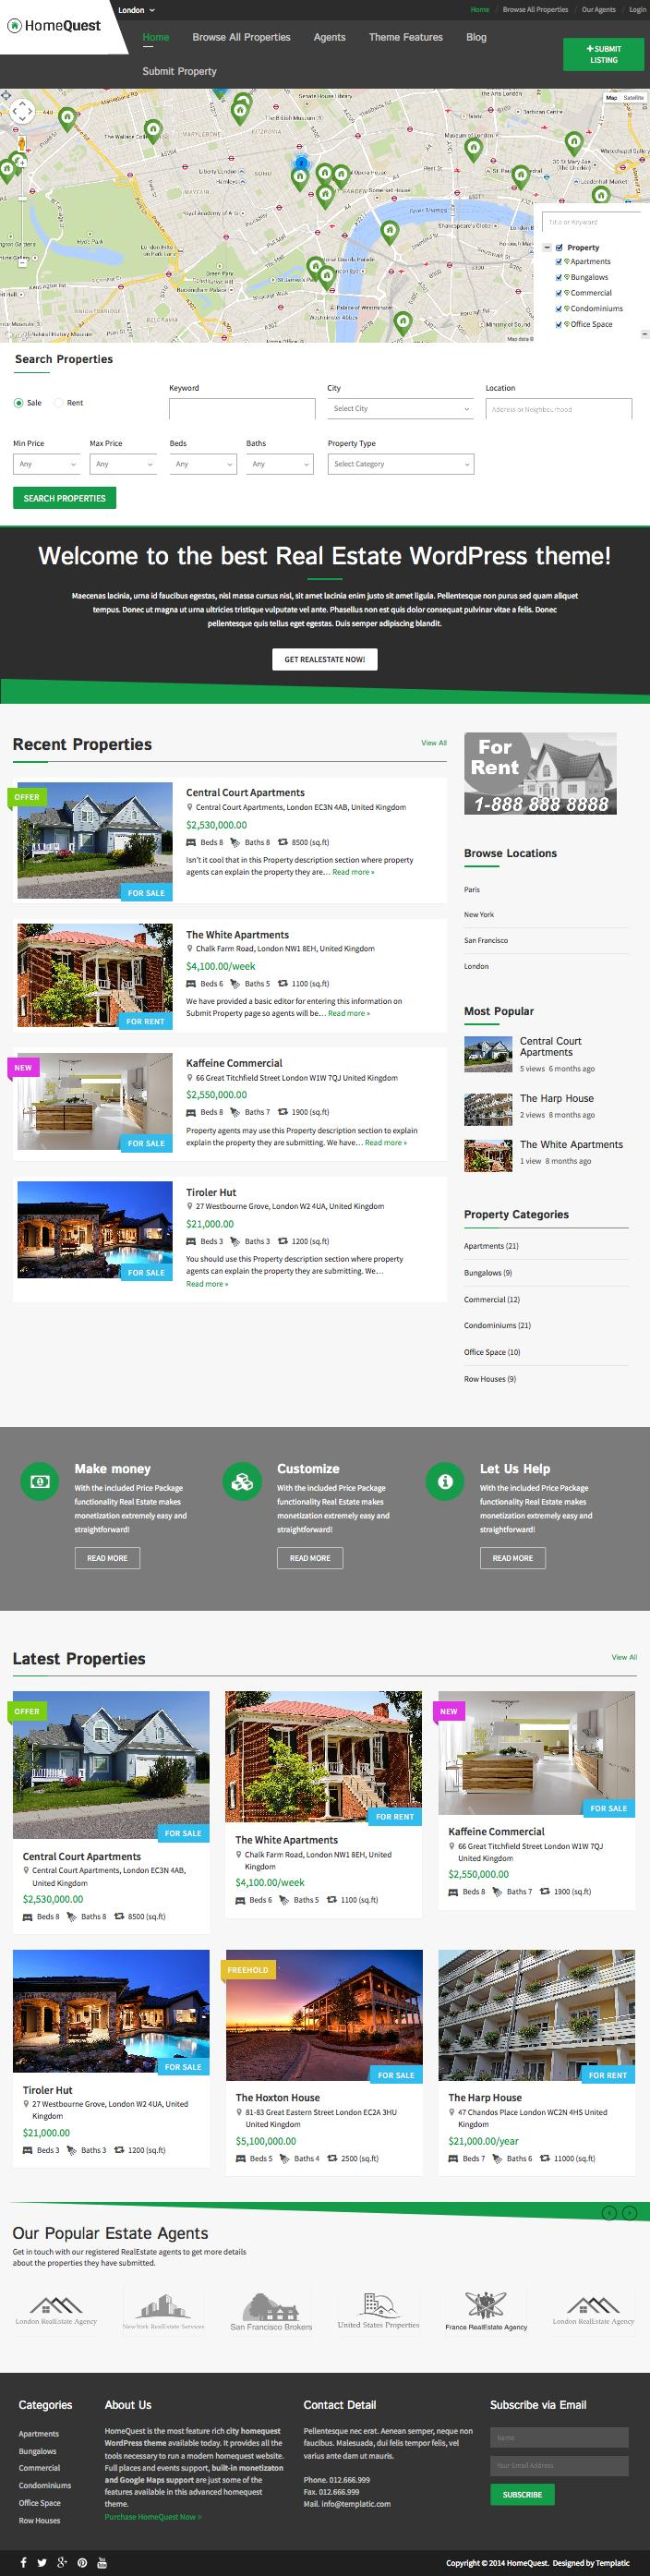 HomeQuest WordPress Property Directory Theme